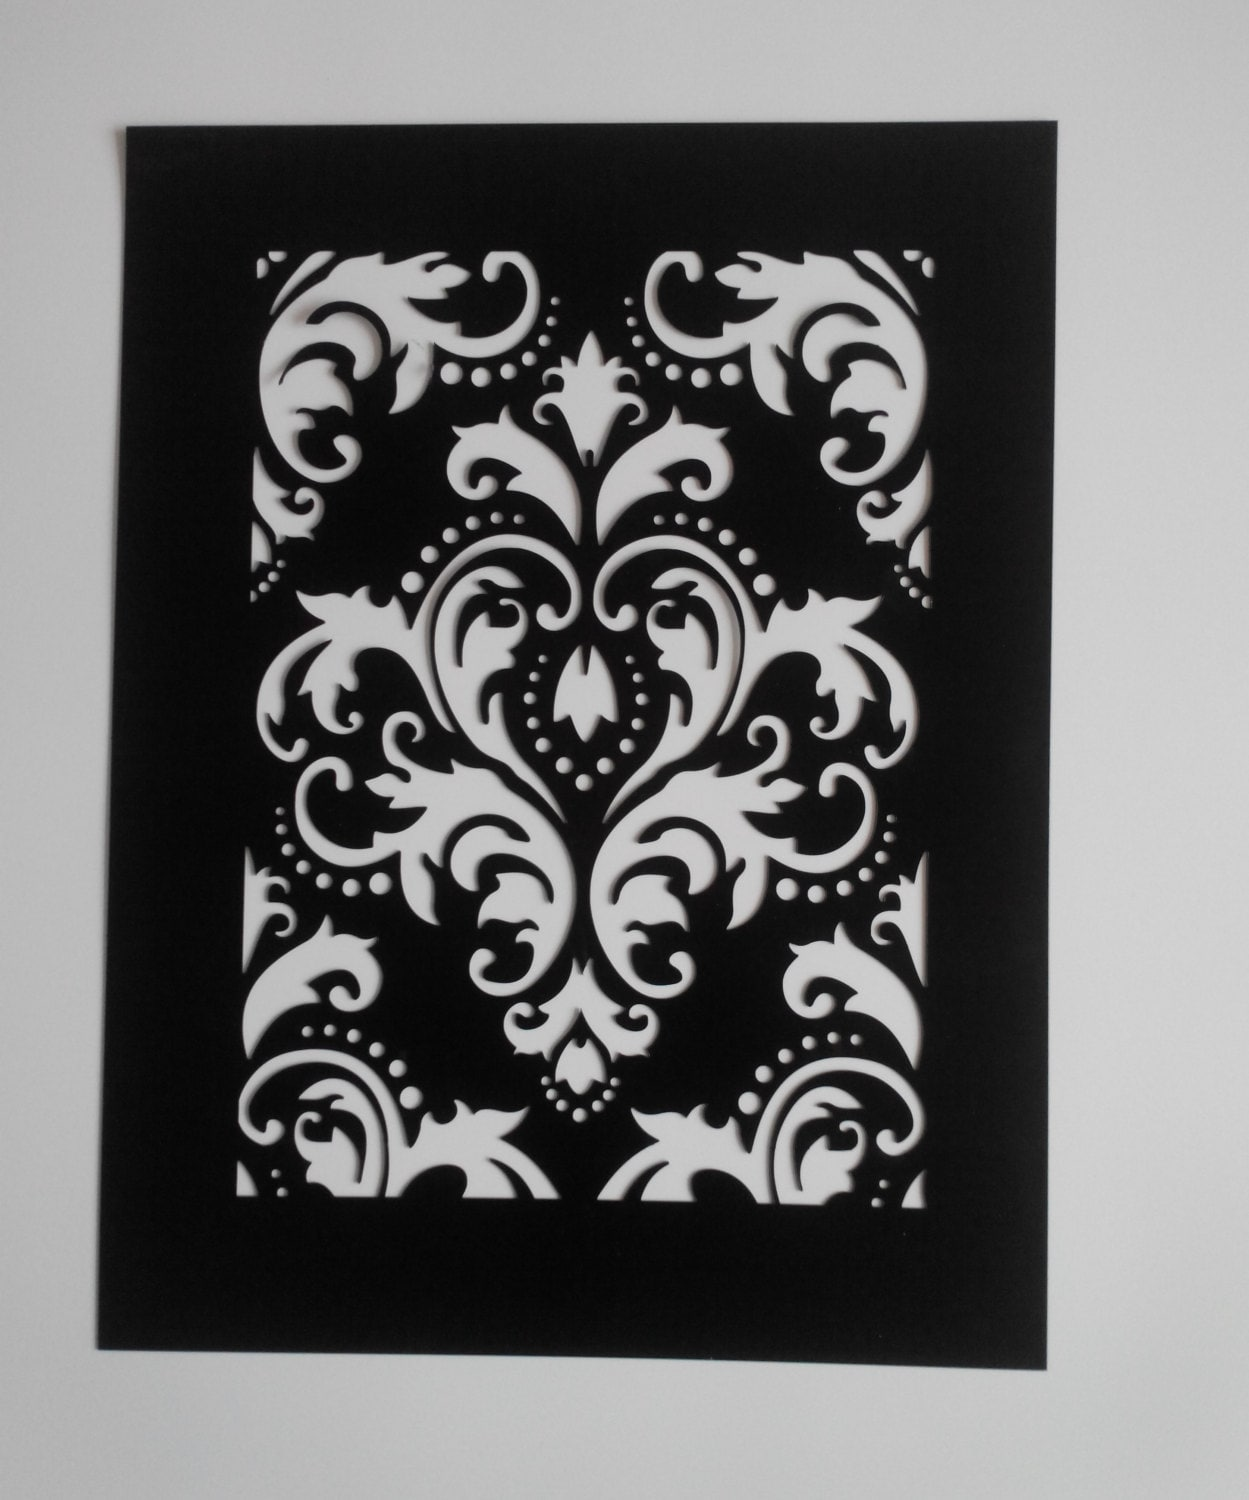 reusable plastic damask stencil painting art supply wall art damascus from yarmart on etsy. Black Bedroom Furniture Sets. Home Design Ideas